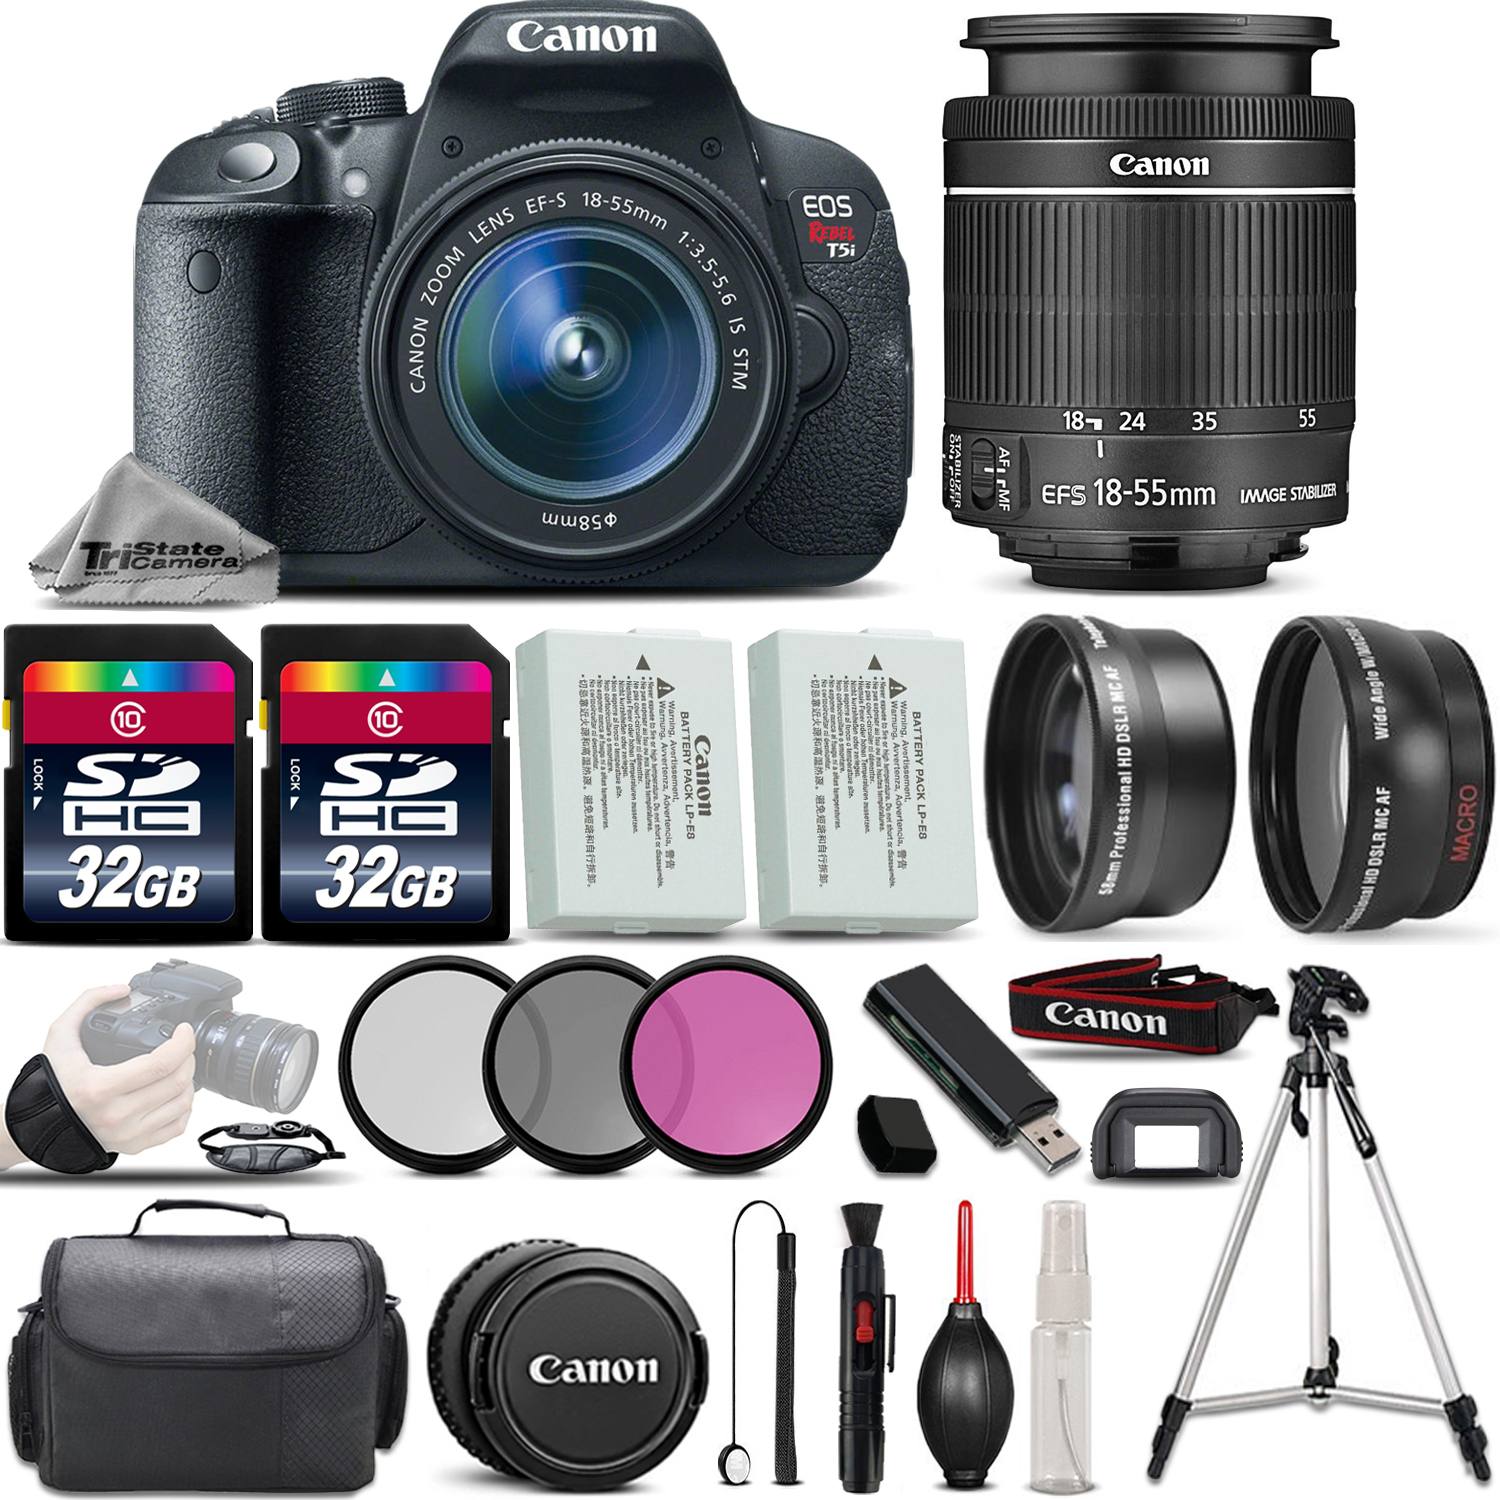 EOS Rebel T5i DSLR Camera Full HD 1080p + 18-55mm IS STM Lens + .43x Wide Angle Lens + 2.2X Telephoto Lens + 3PC Filter (UV-CPL-FLD) + 64GB Storage + Backup Battery - International Version *FREE SHIPPING*